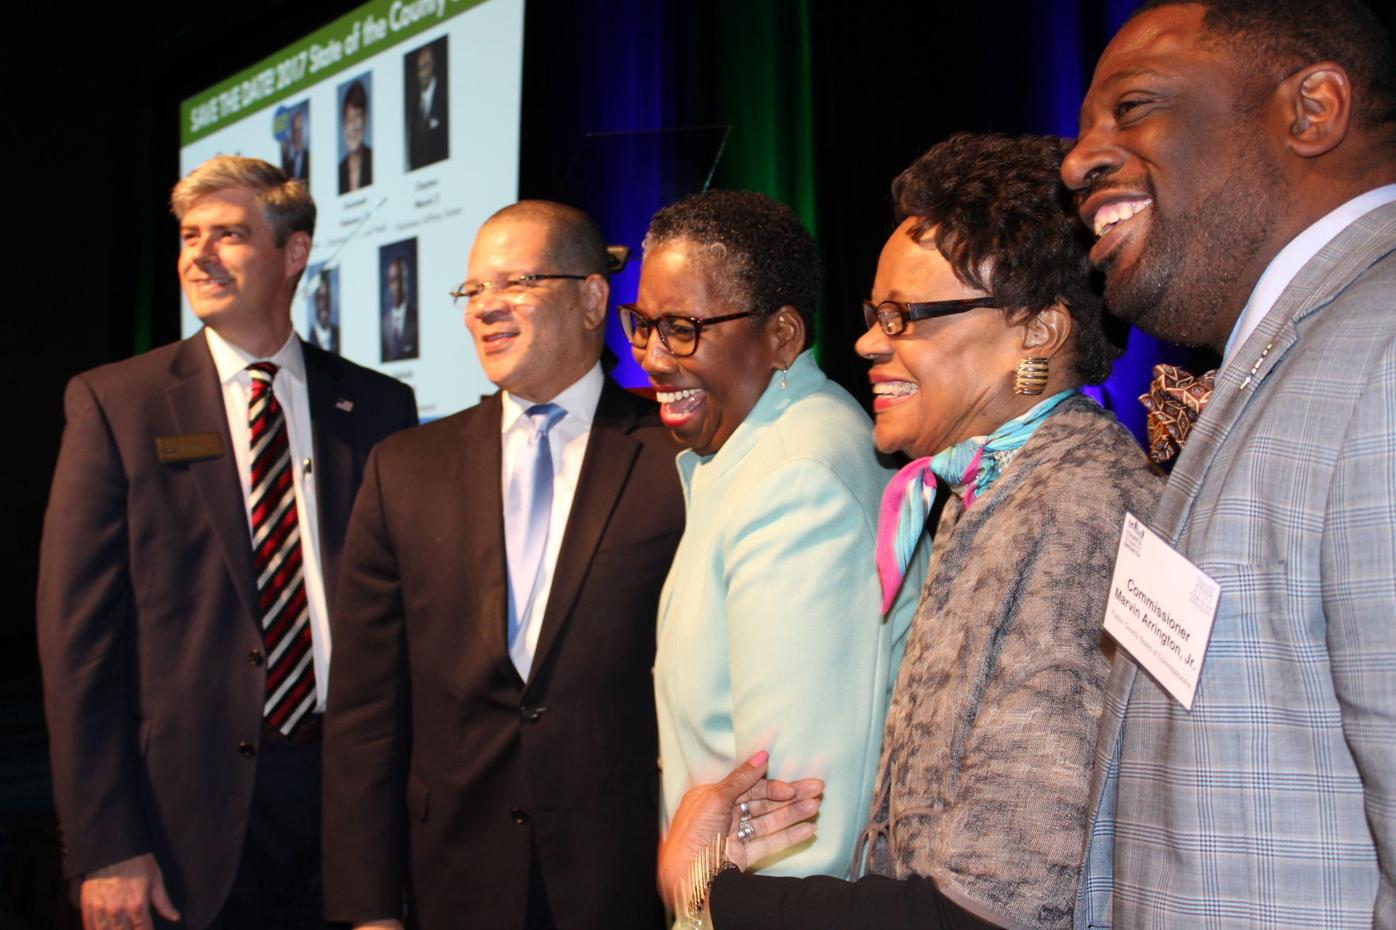 Fulton County state of county address